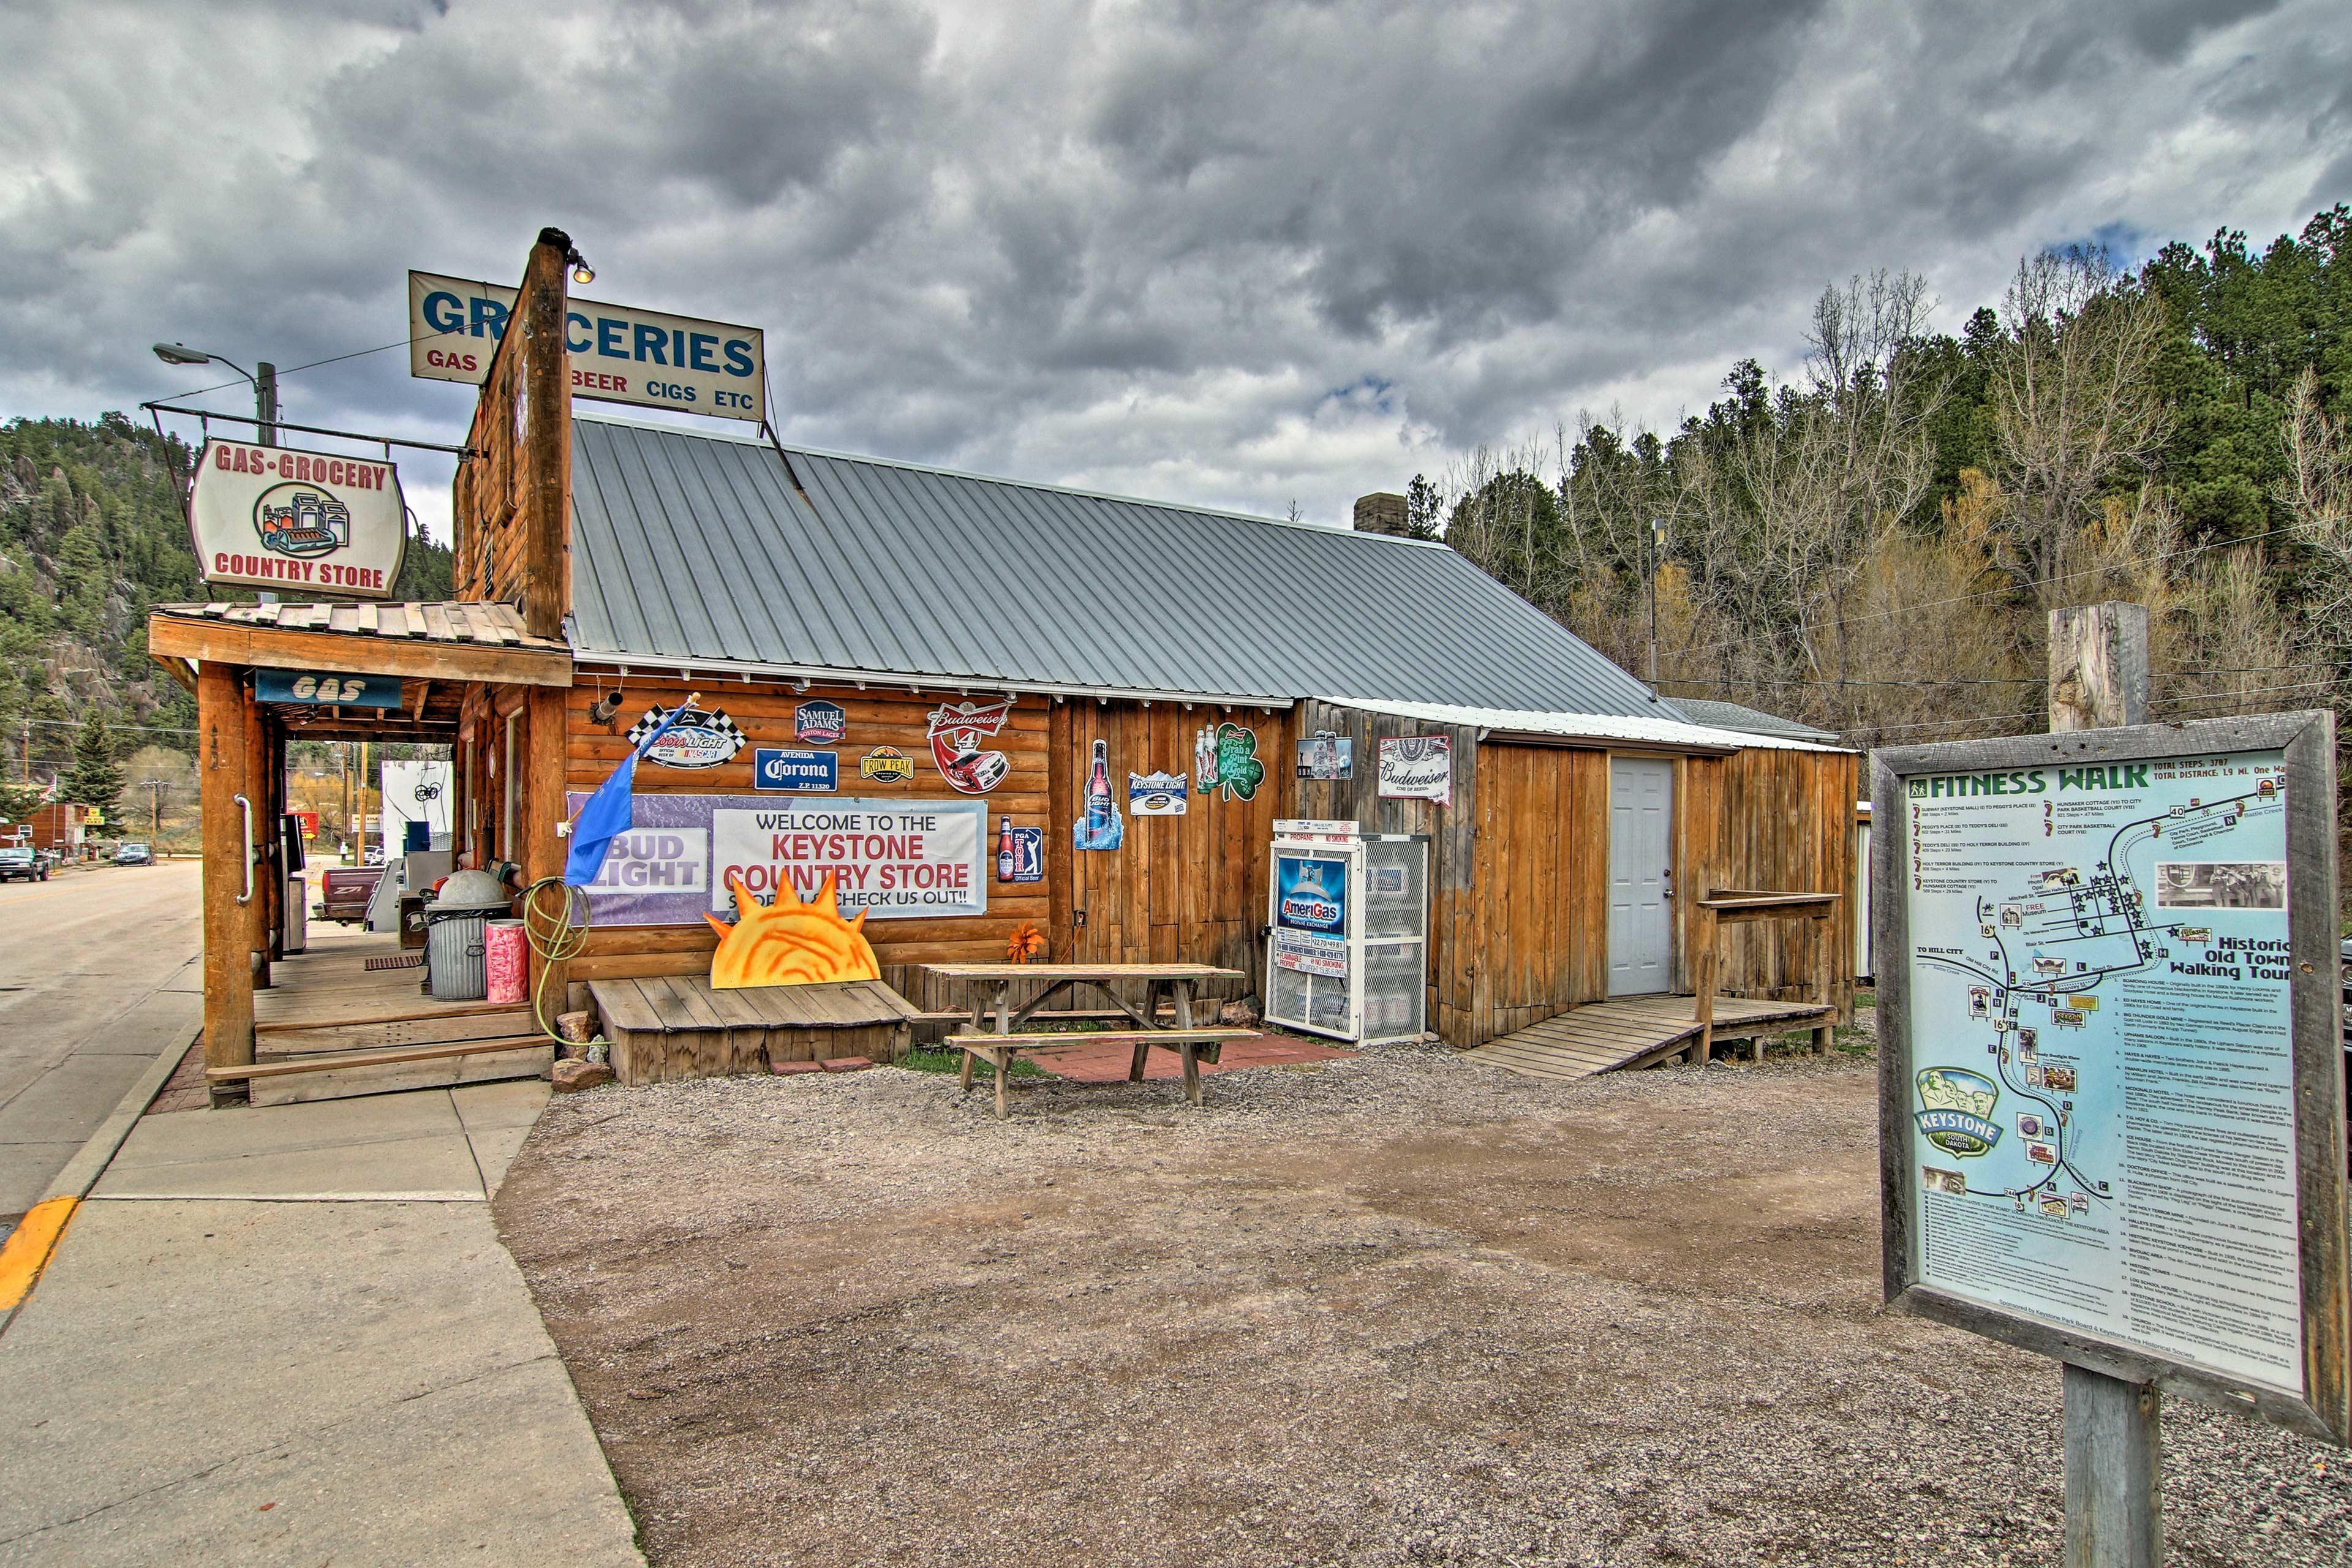 This town is nestled in the picturesque Black Hills National Forest.